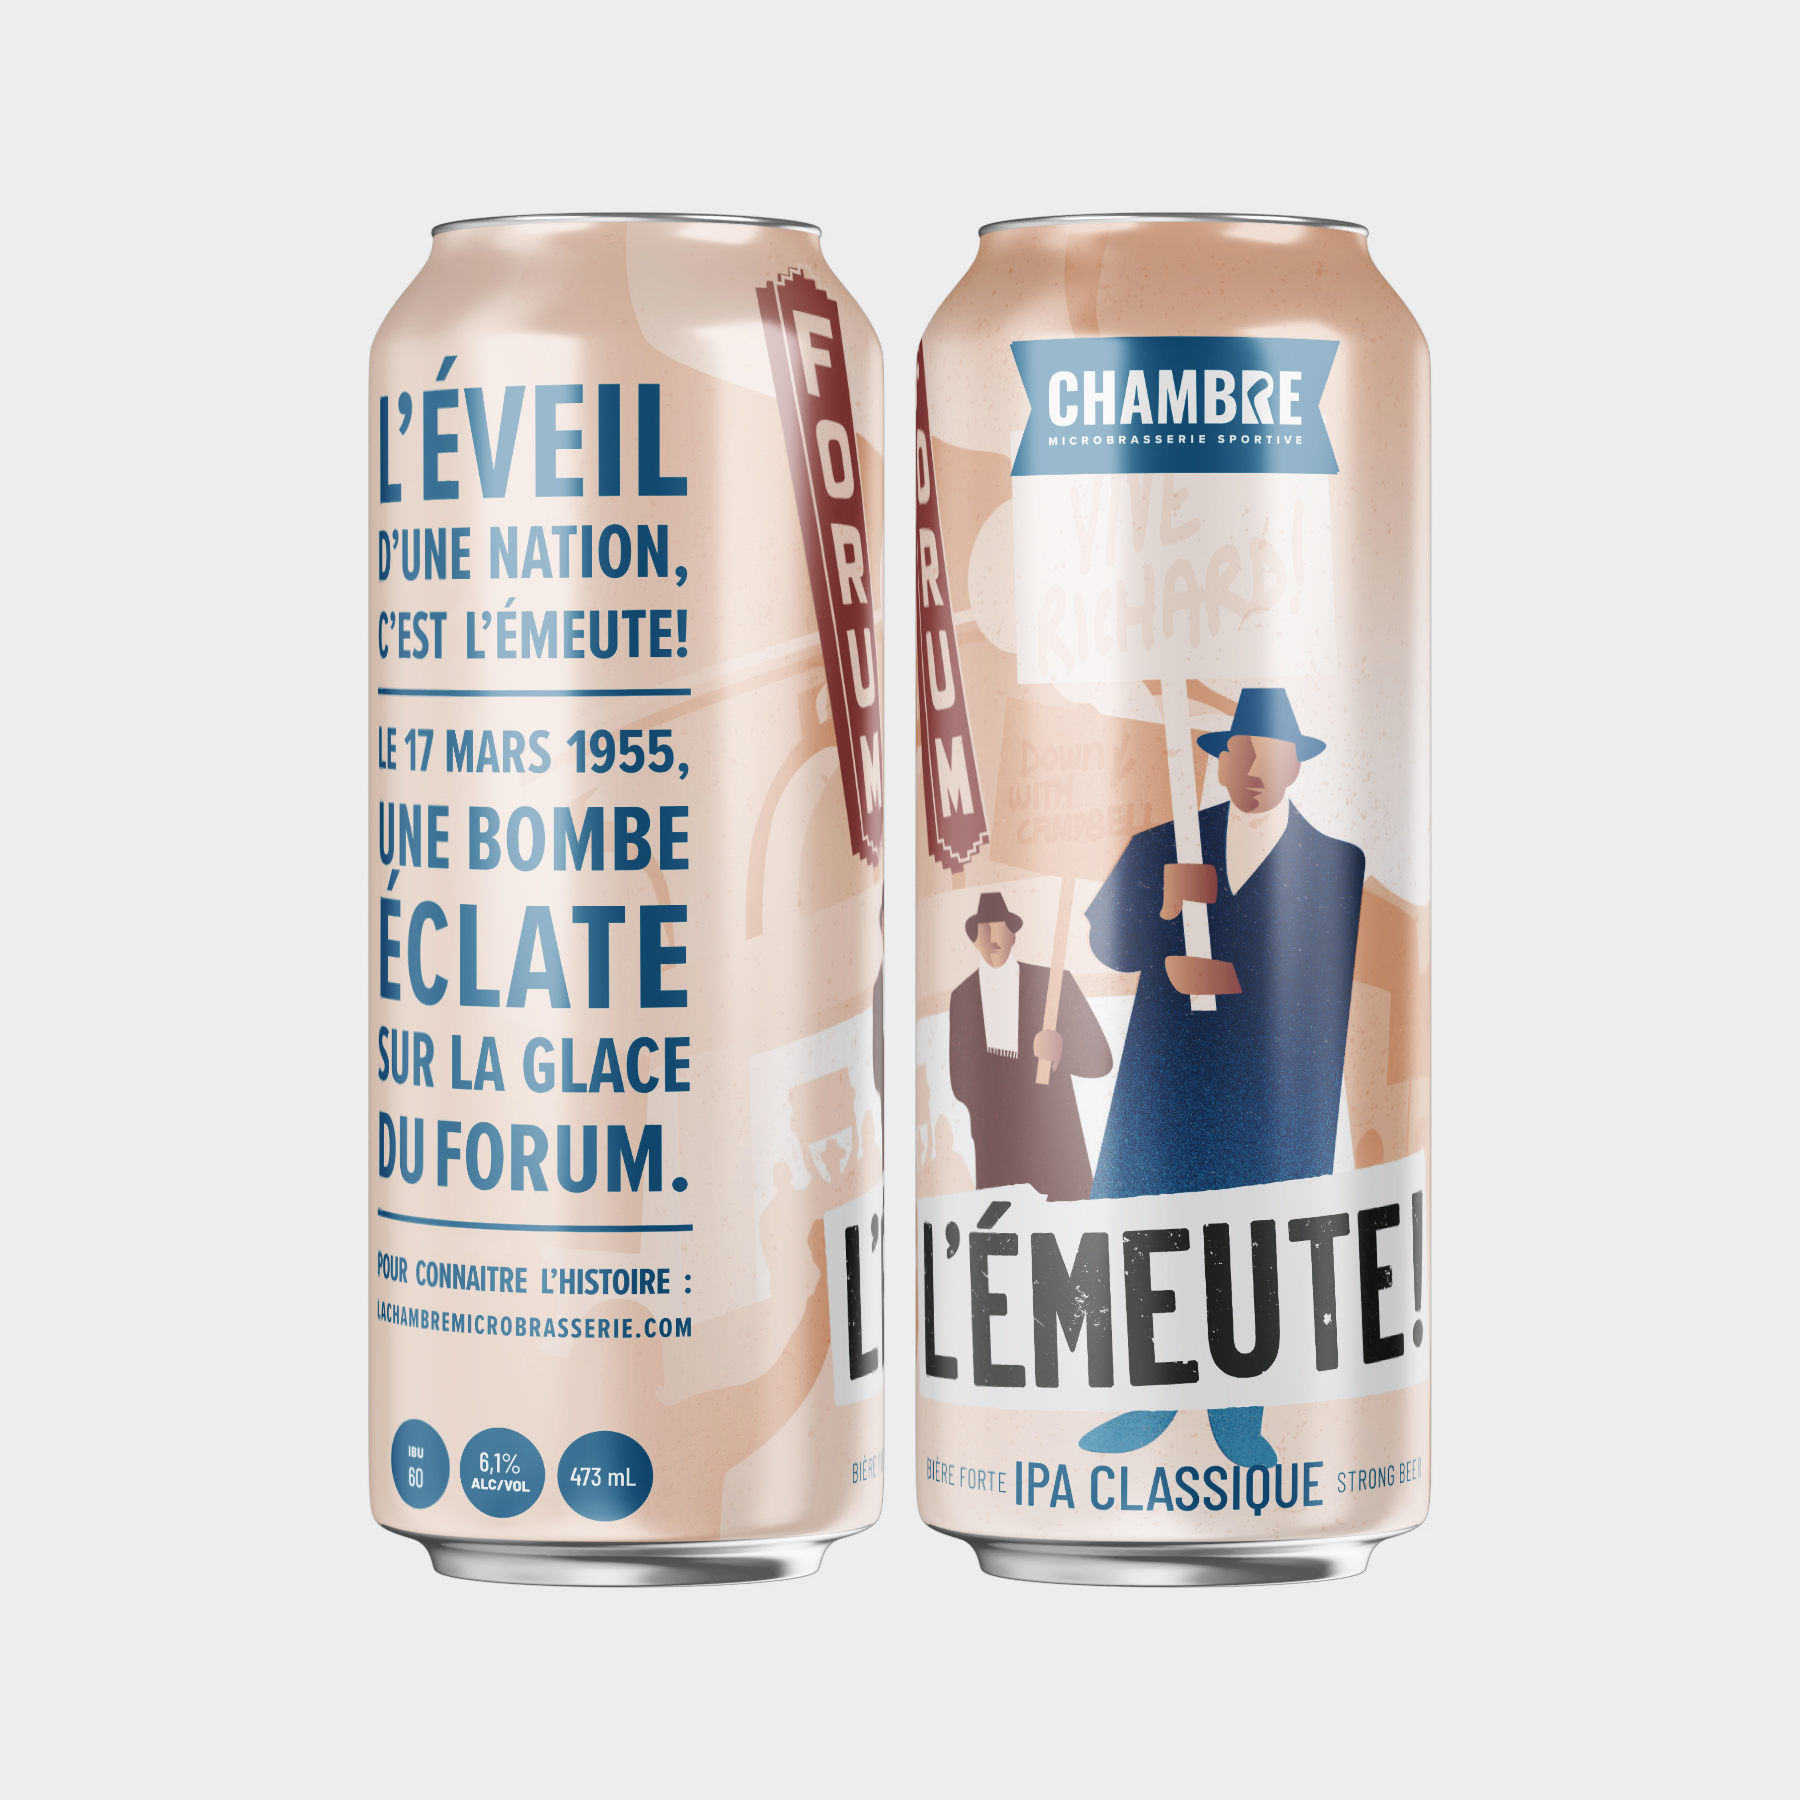 La Chambre Microbrasserie Montreal Packaging Design